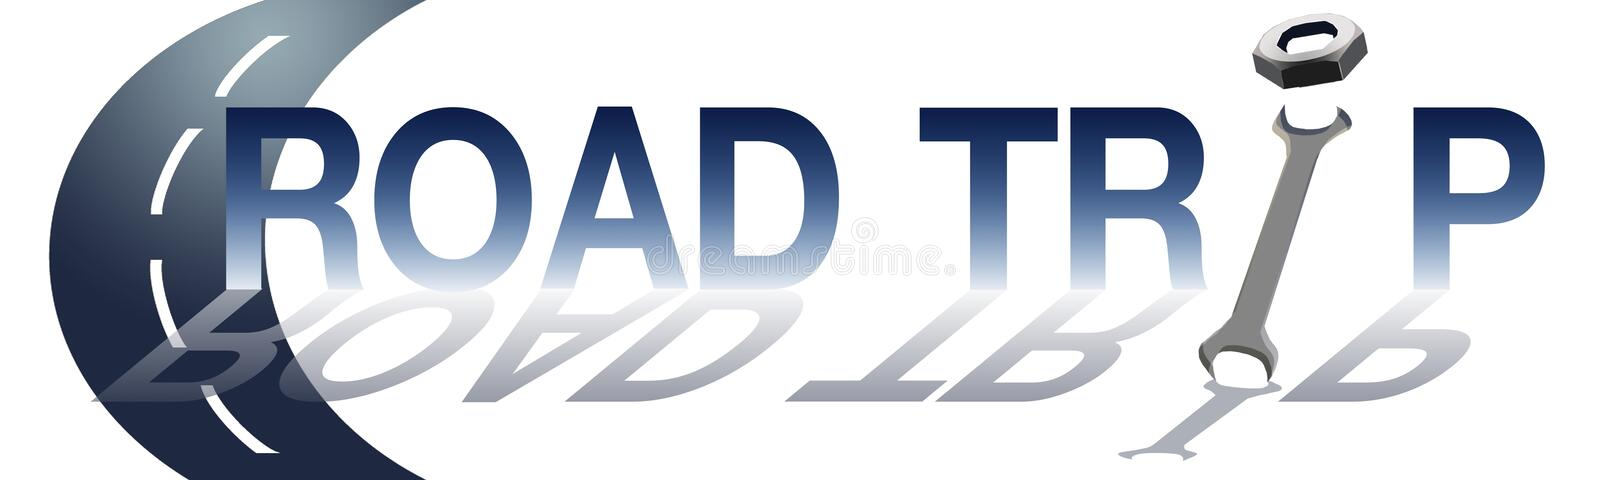 Download Street Road Background With Text Road Trip Stock Illustration - Image: 28524927